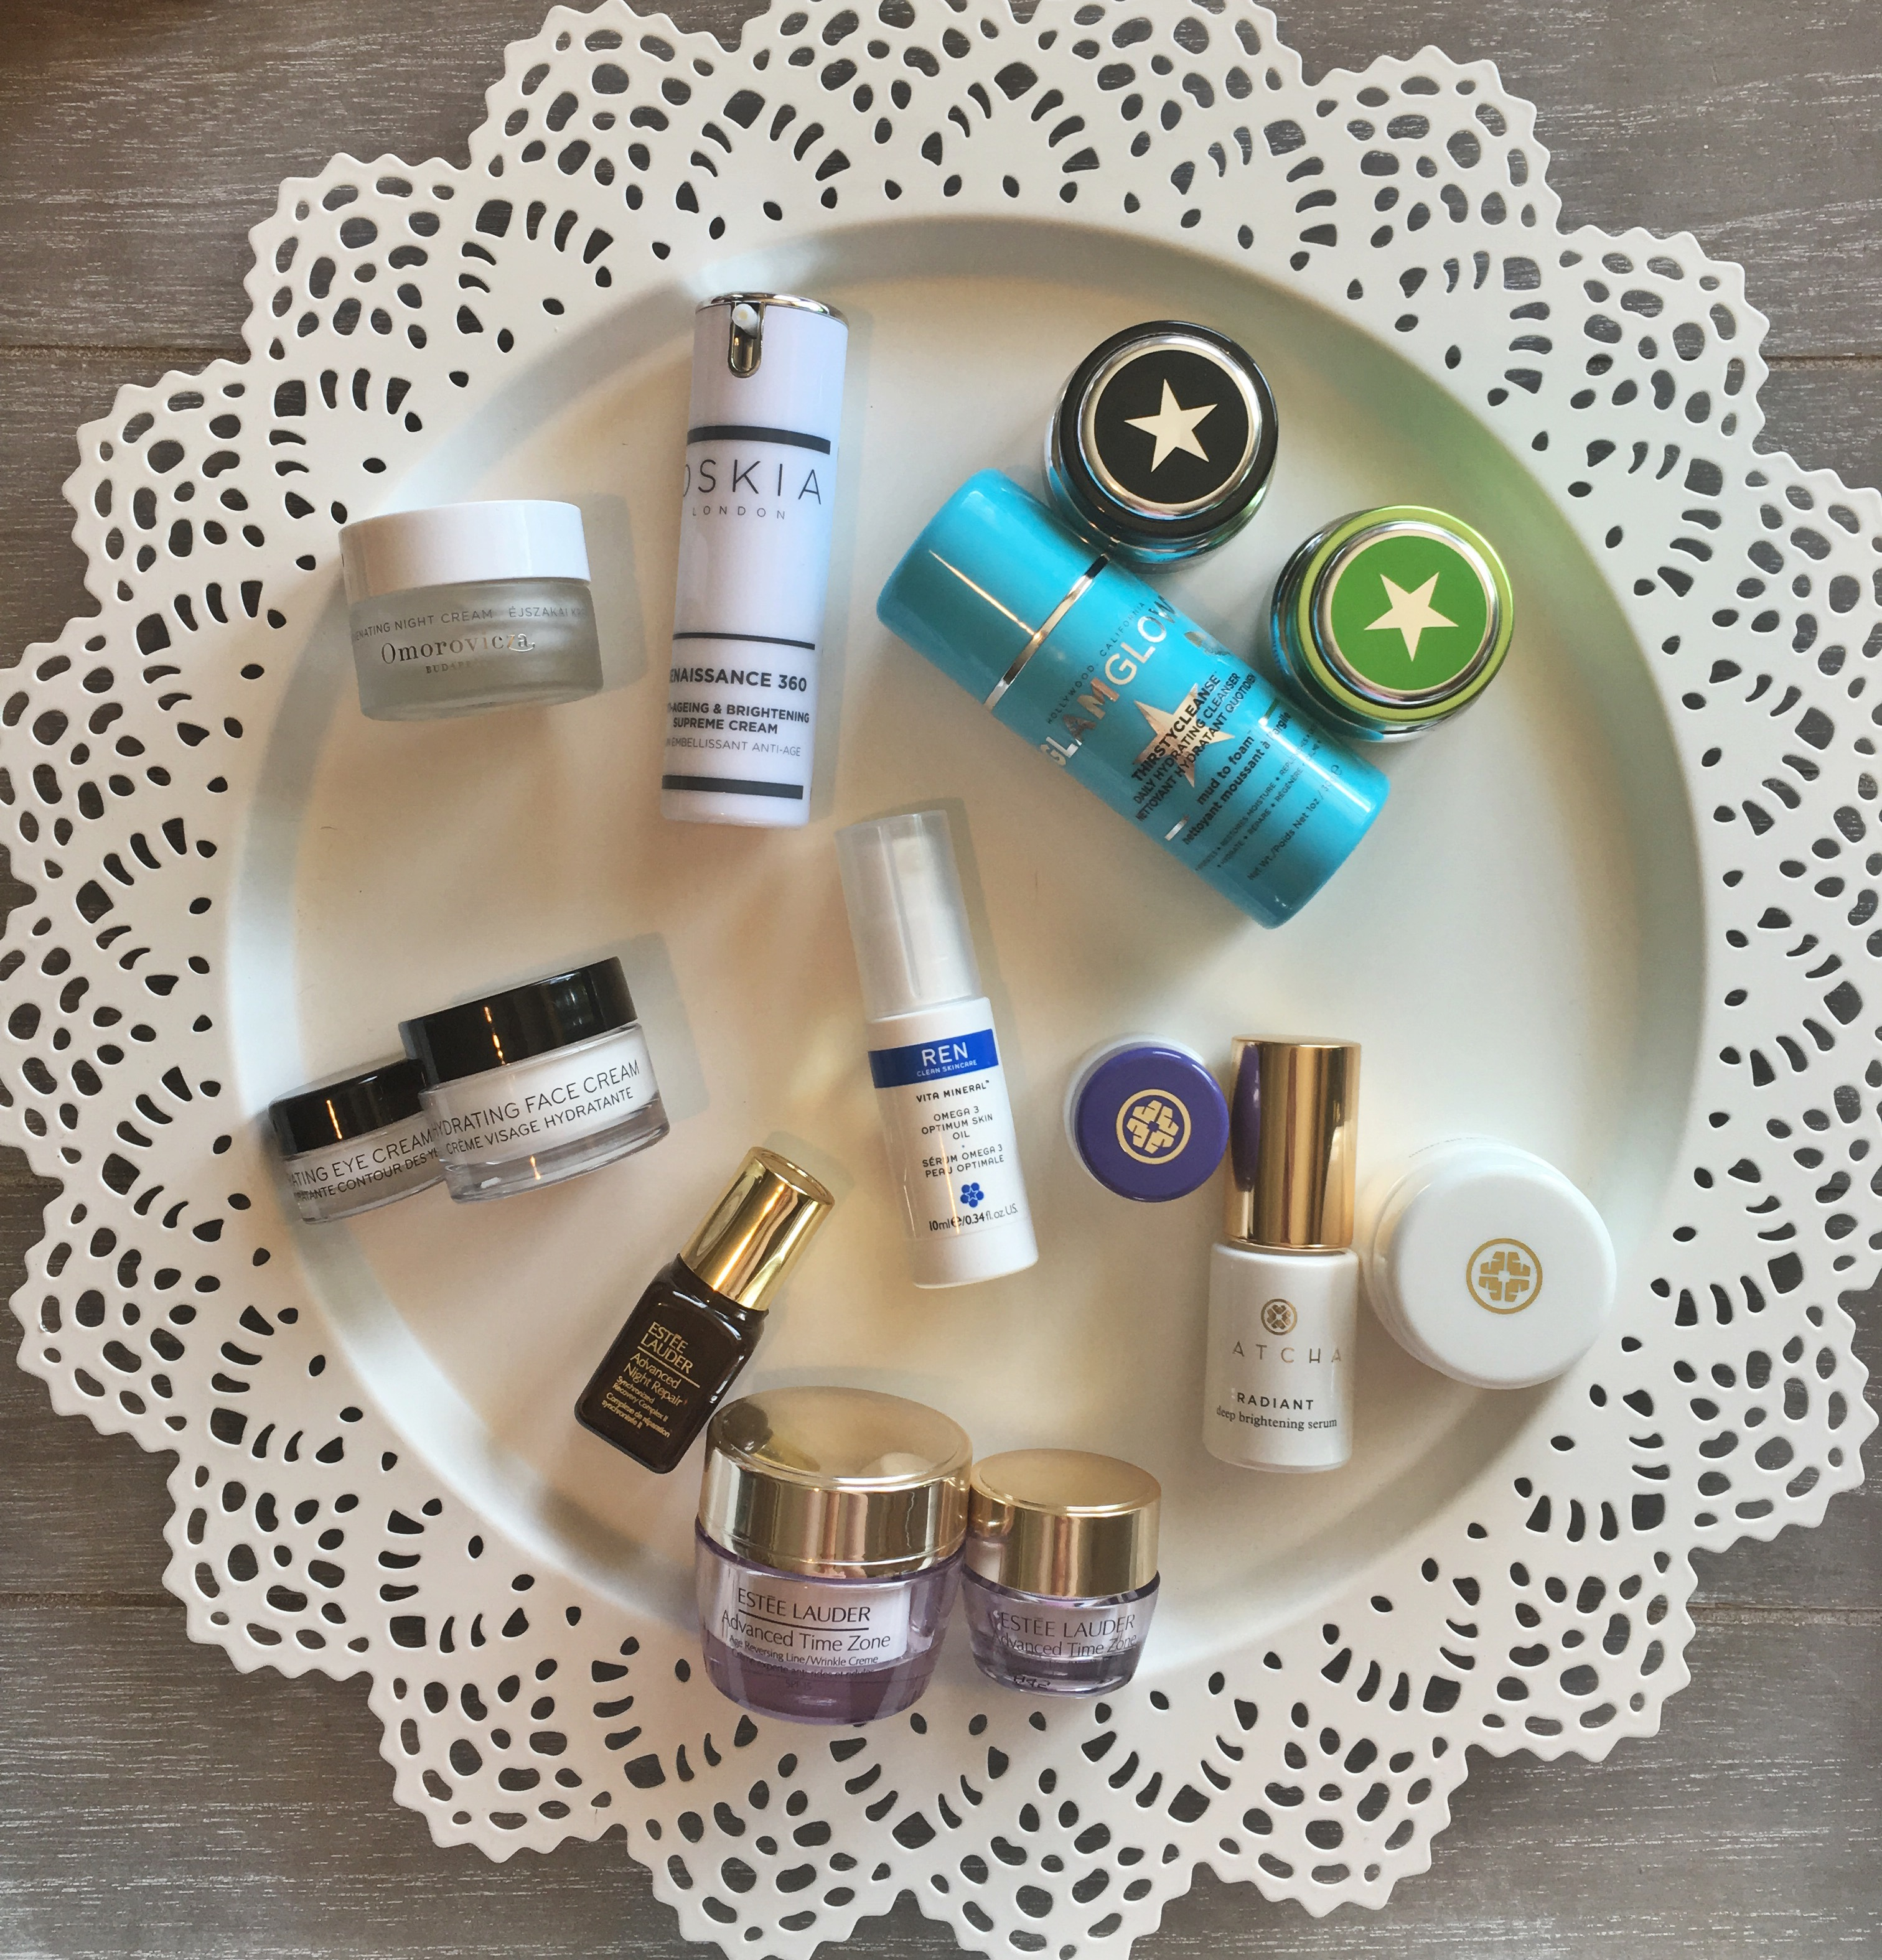 Skincare travel sizes and minis